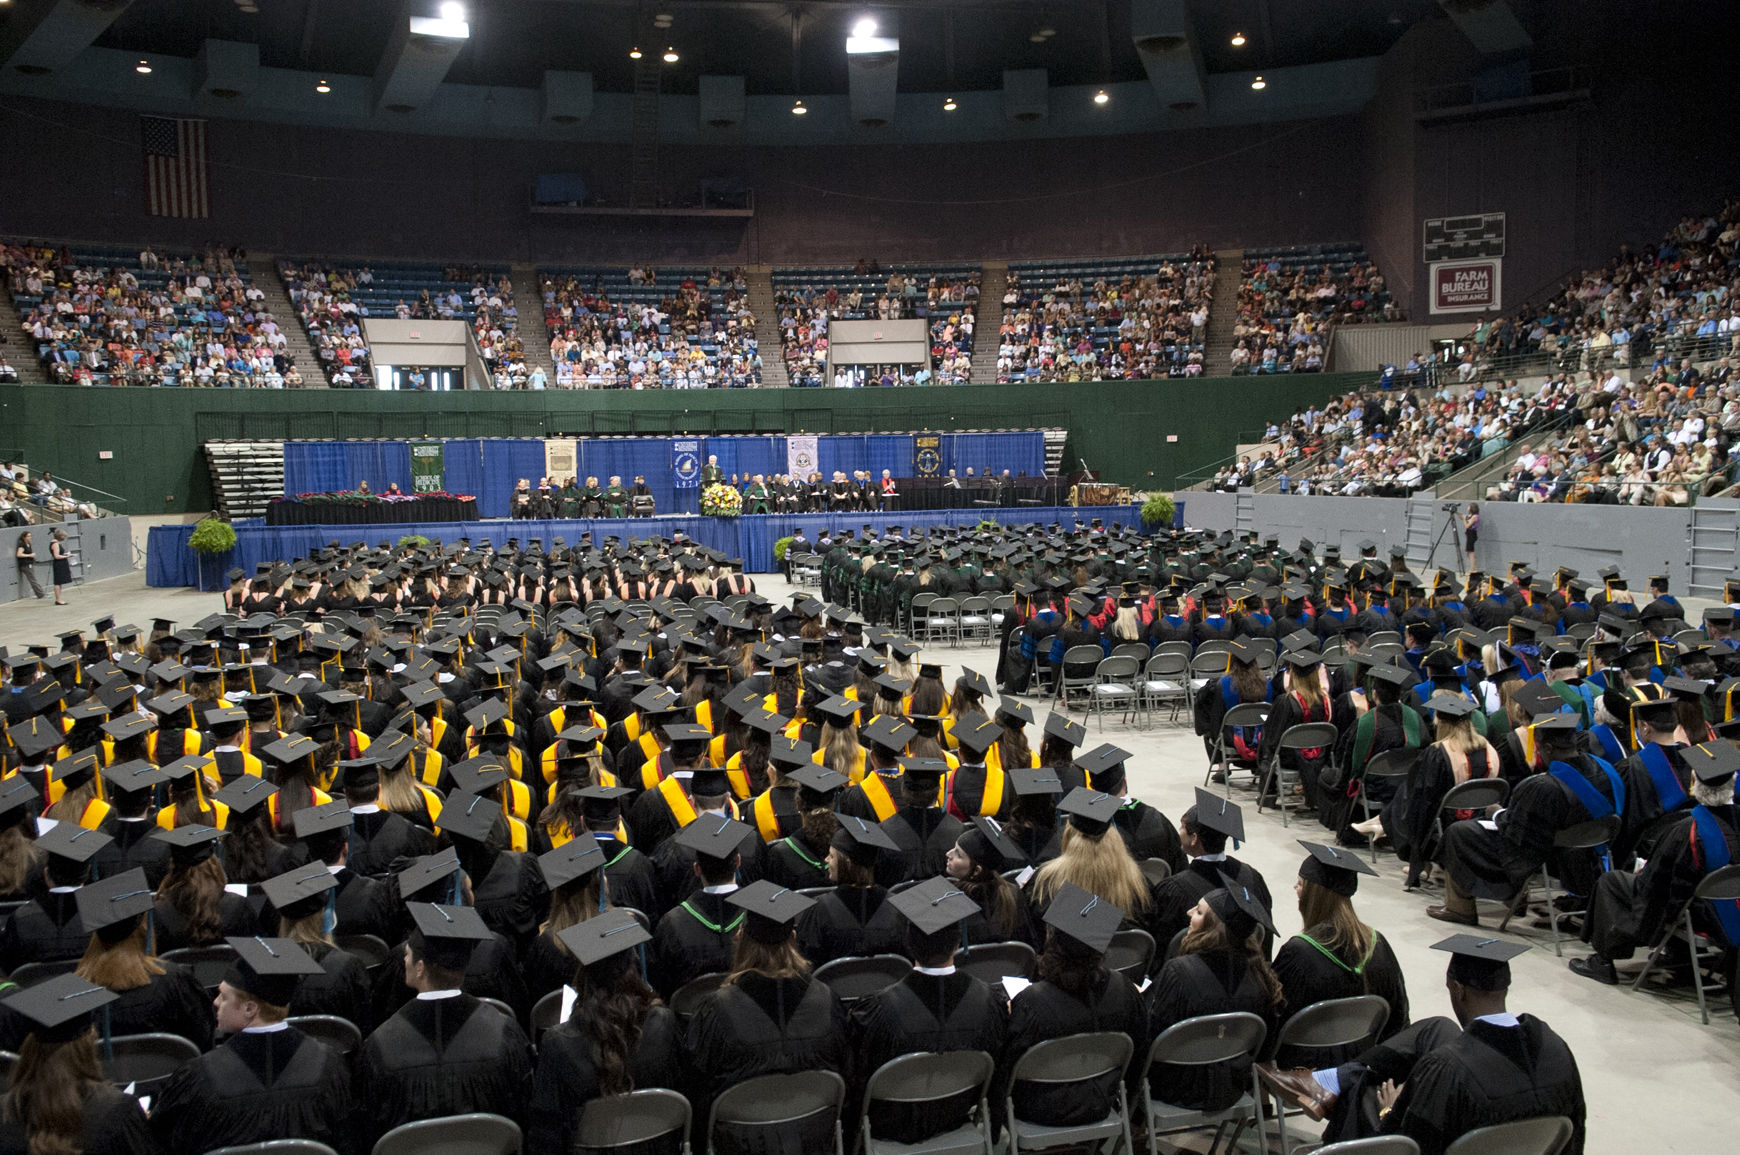 Thousands gathered to cheer on loved ones and share in the celebration of the University of Mississippi Medical Center's 58th annual commencement ceremonies May 23 at the Mississippi Coliseum in Jackson. A record 846 students received degrees in the health professions.